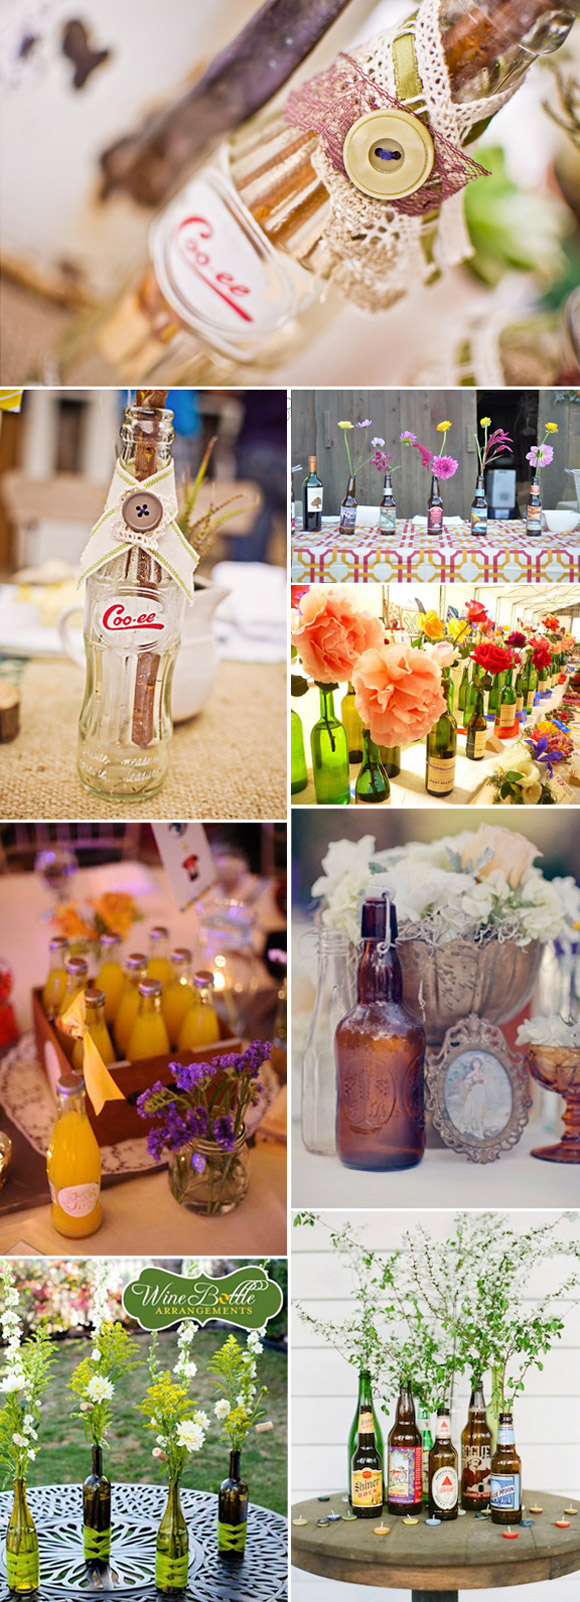 ideas-decoracion-bodas-botellas.jpg